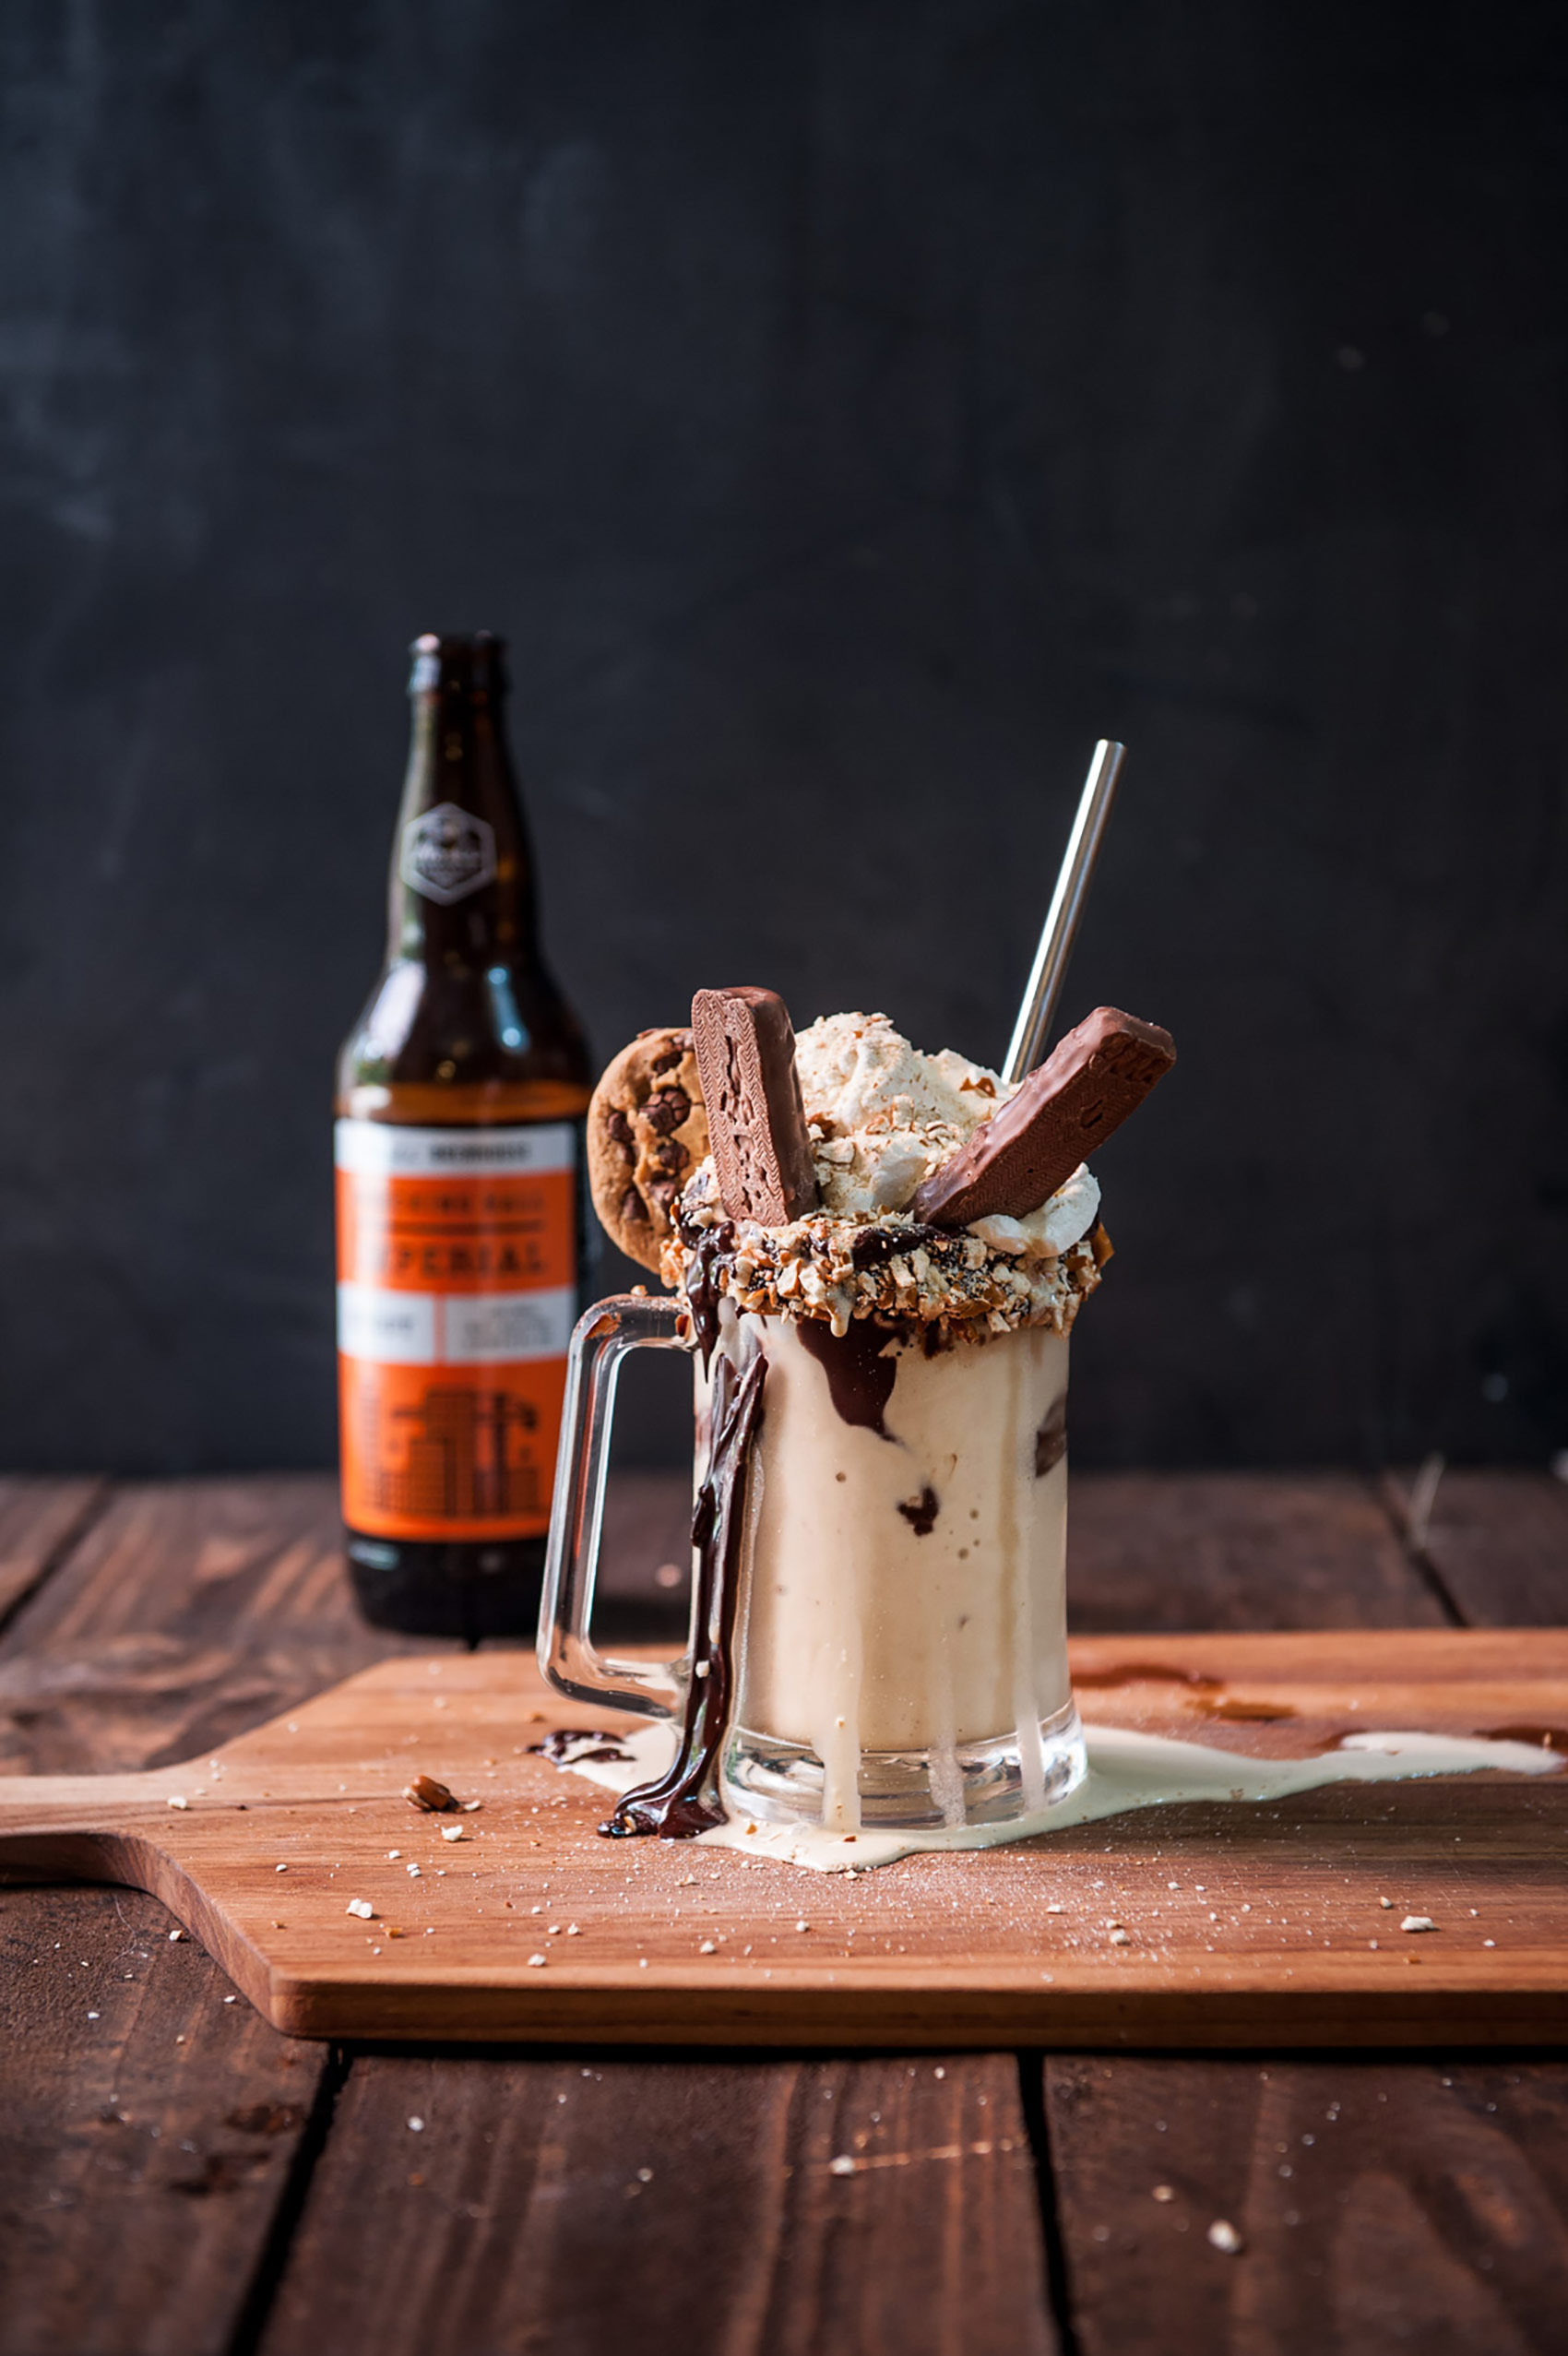 The Beeroness Chocolate Stout Freak Shake